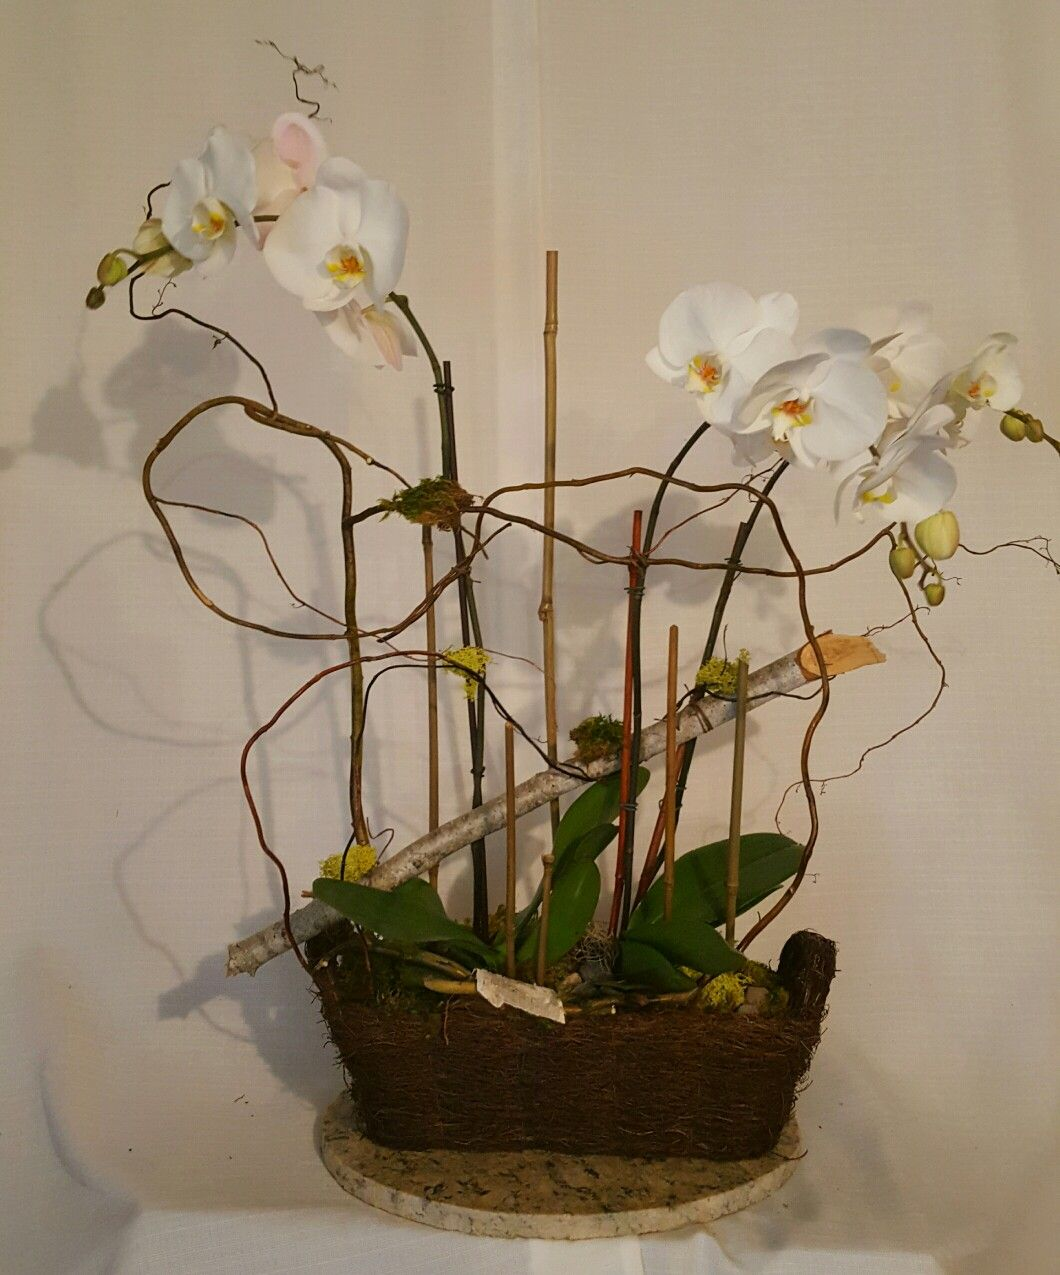 Lovely orchids with bamboo accents create soothing beauty in your